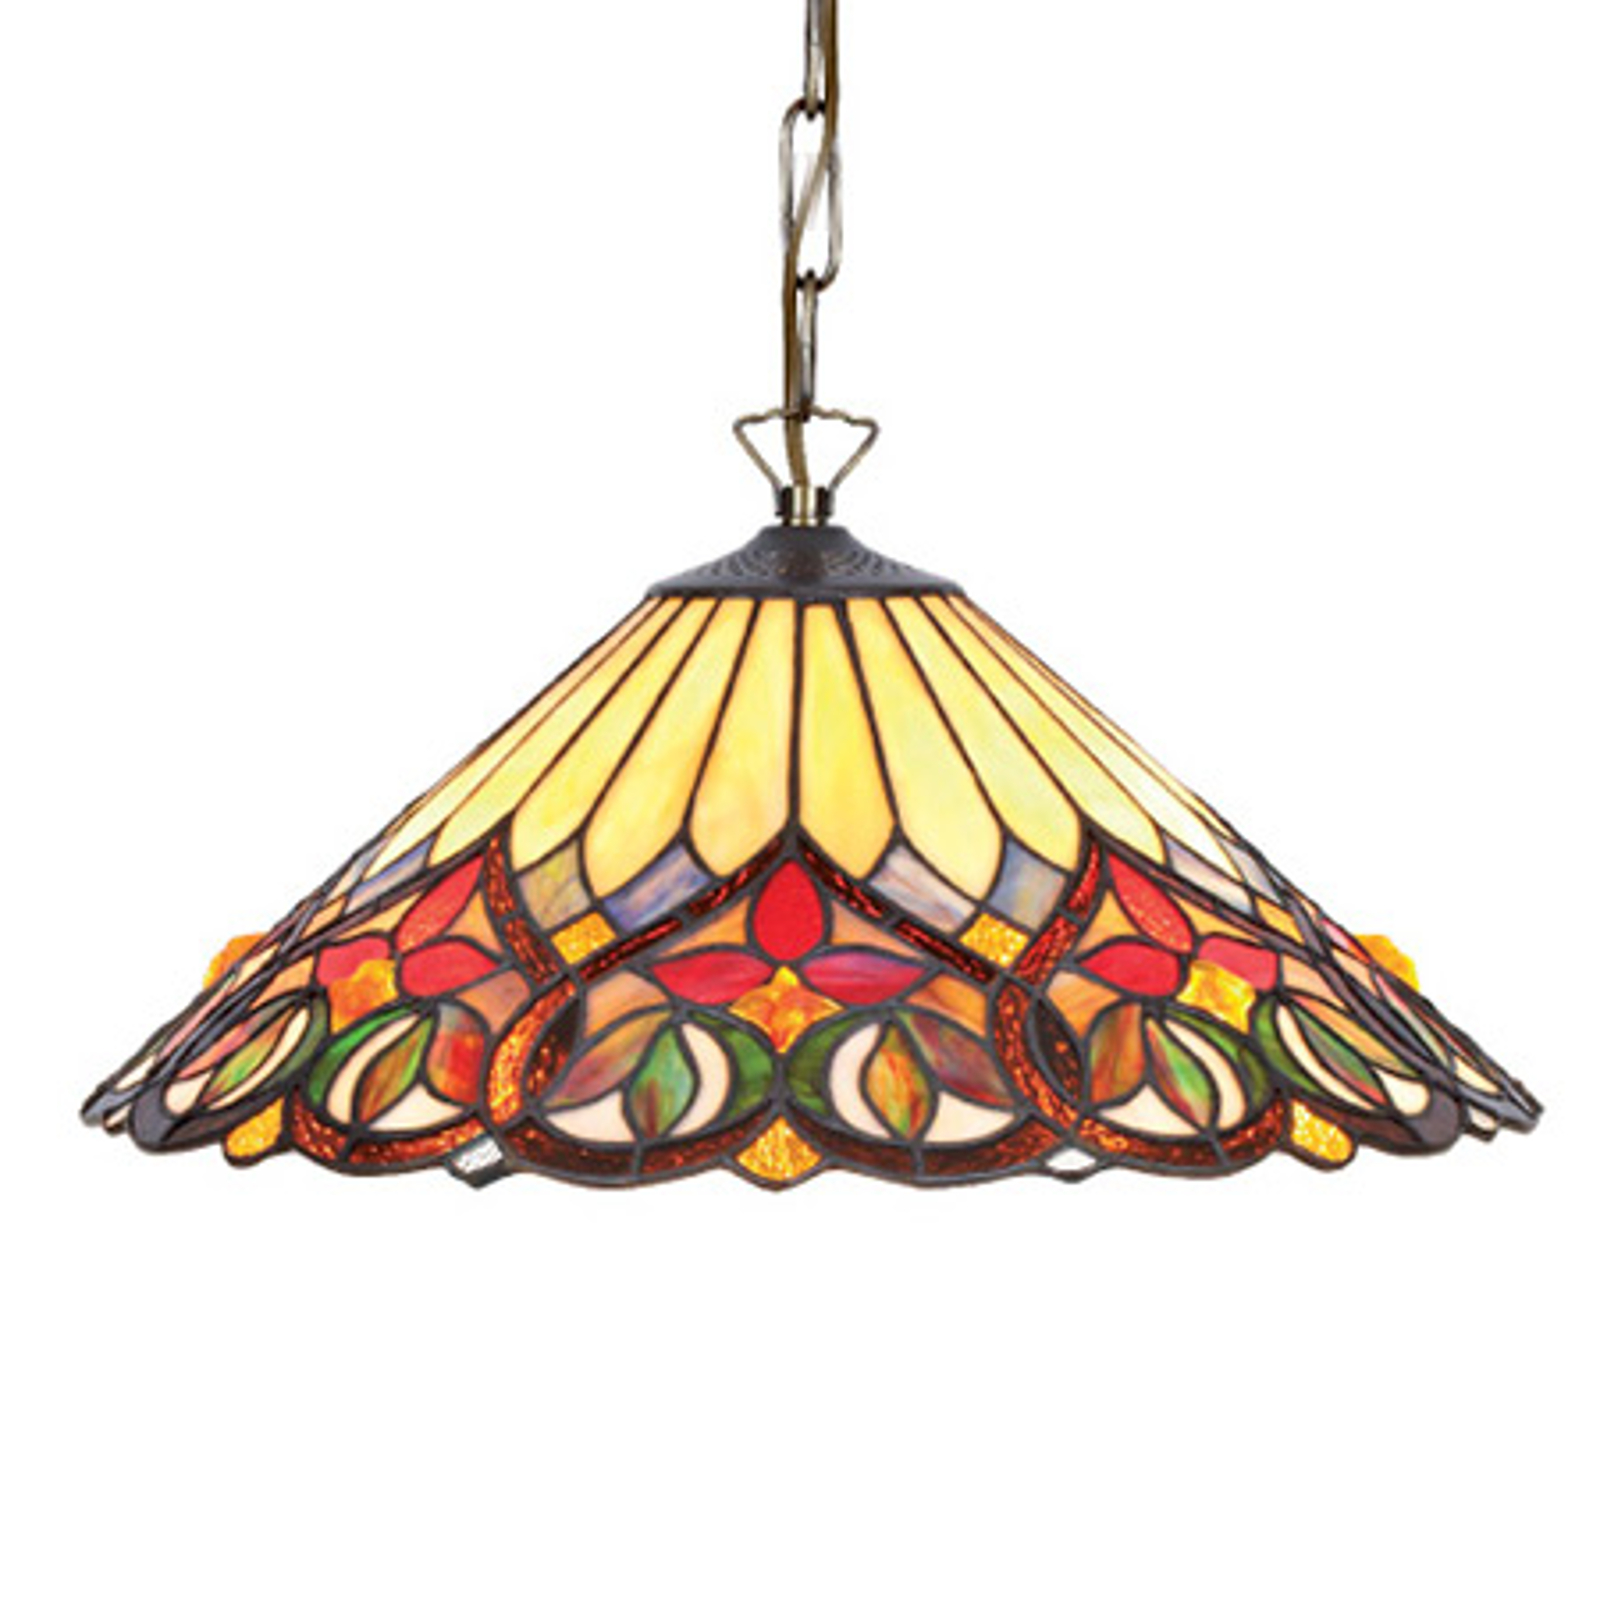 Colourful glass hanging light Anni, Tiffany style_1032325_1